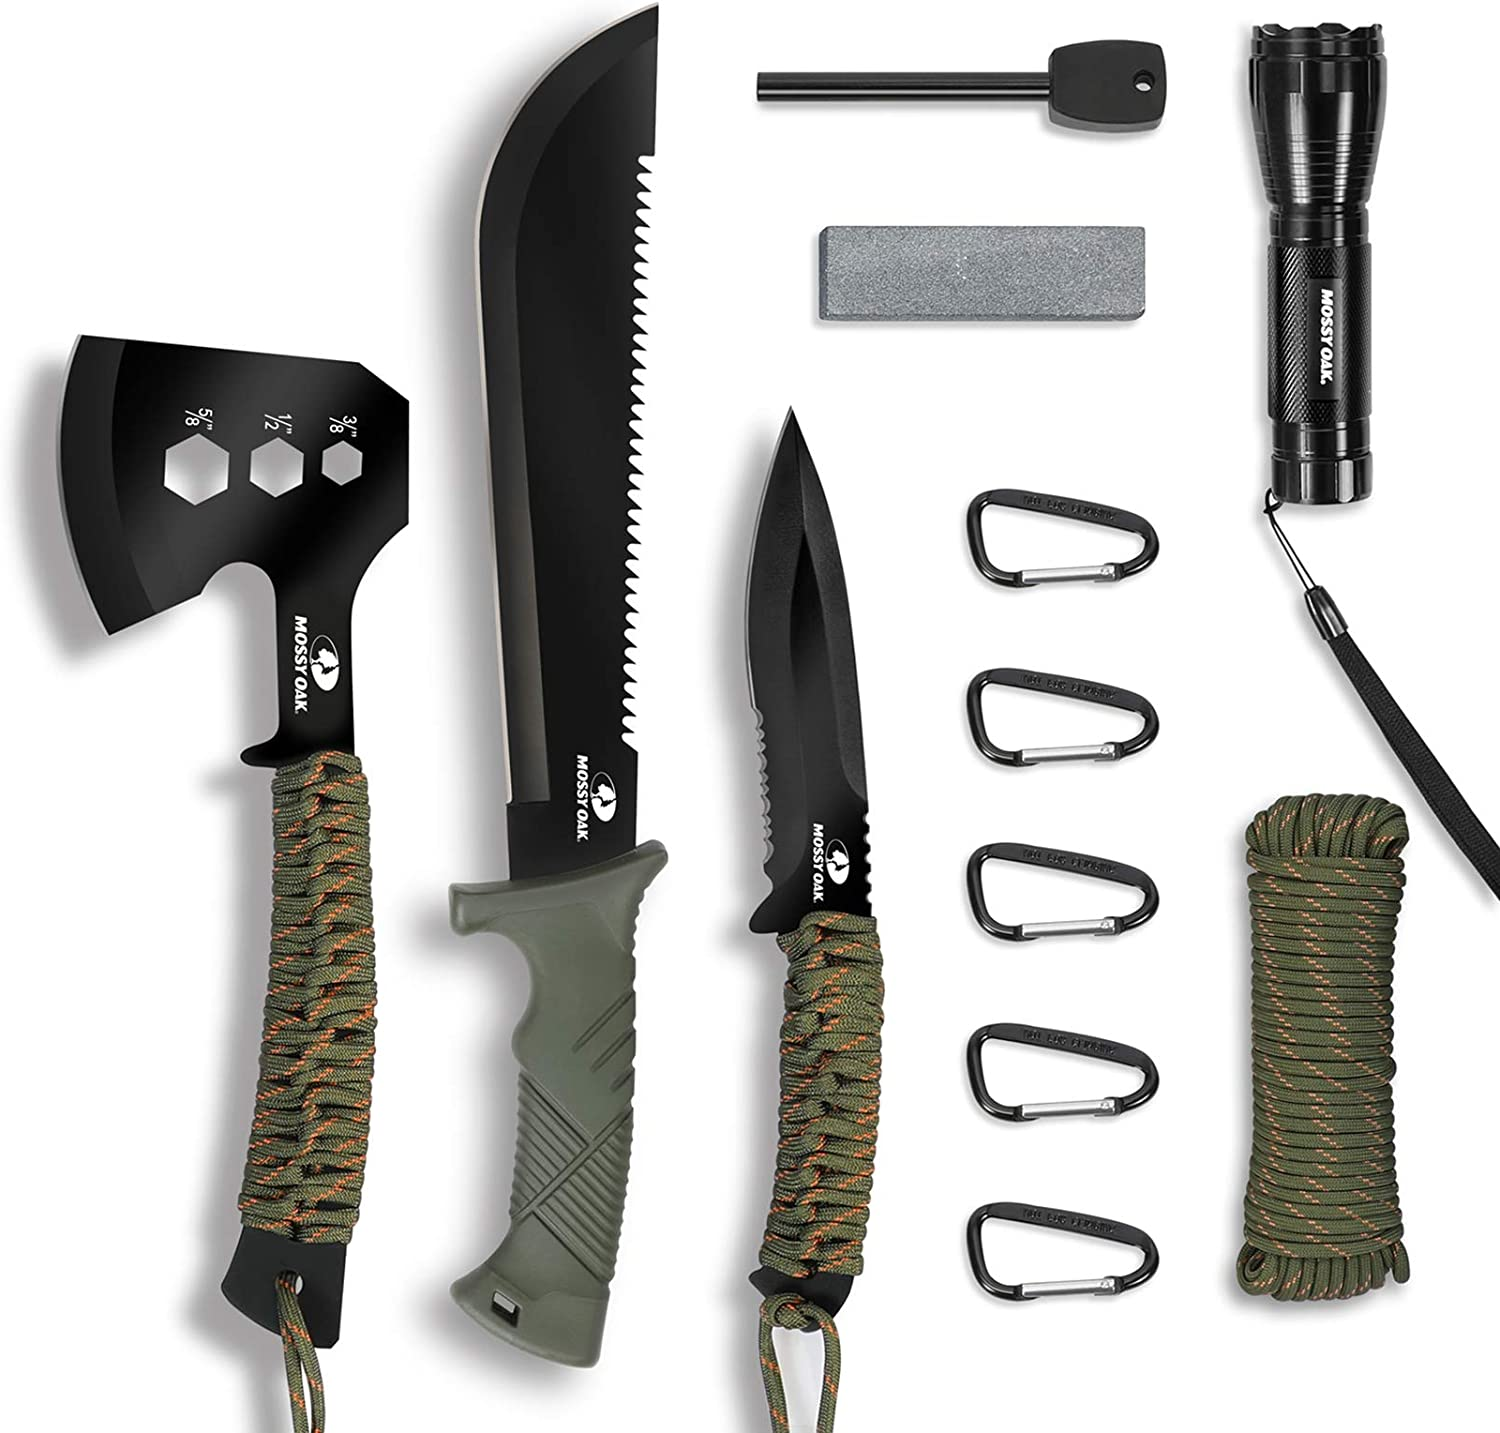 Mossy Oak Axes for camping